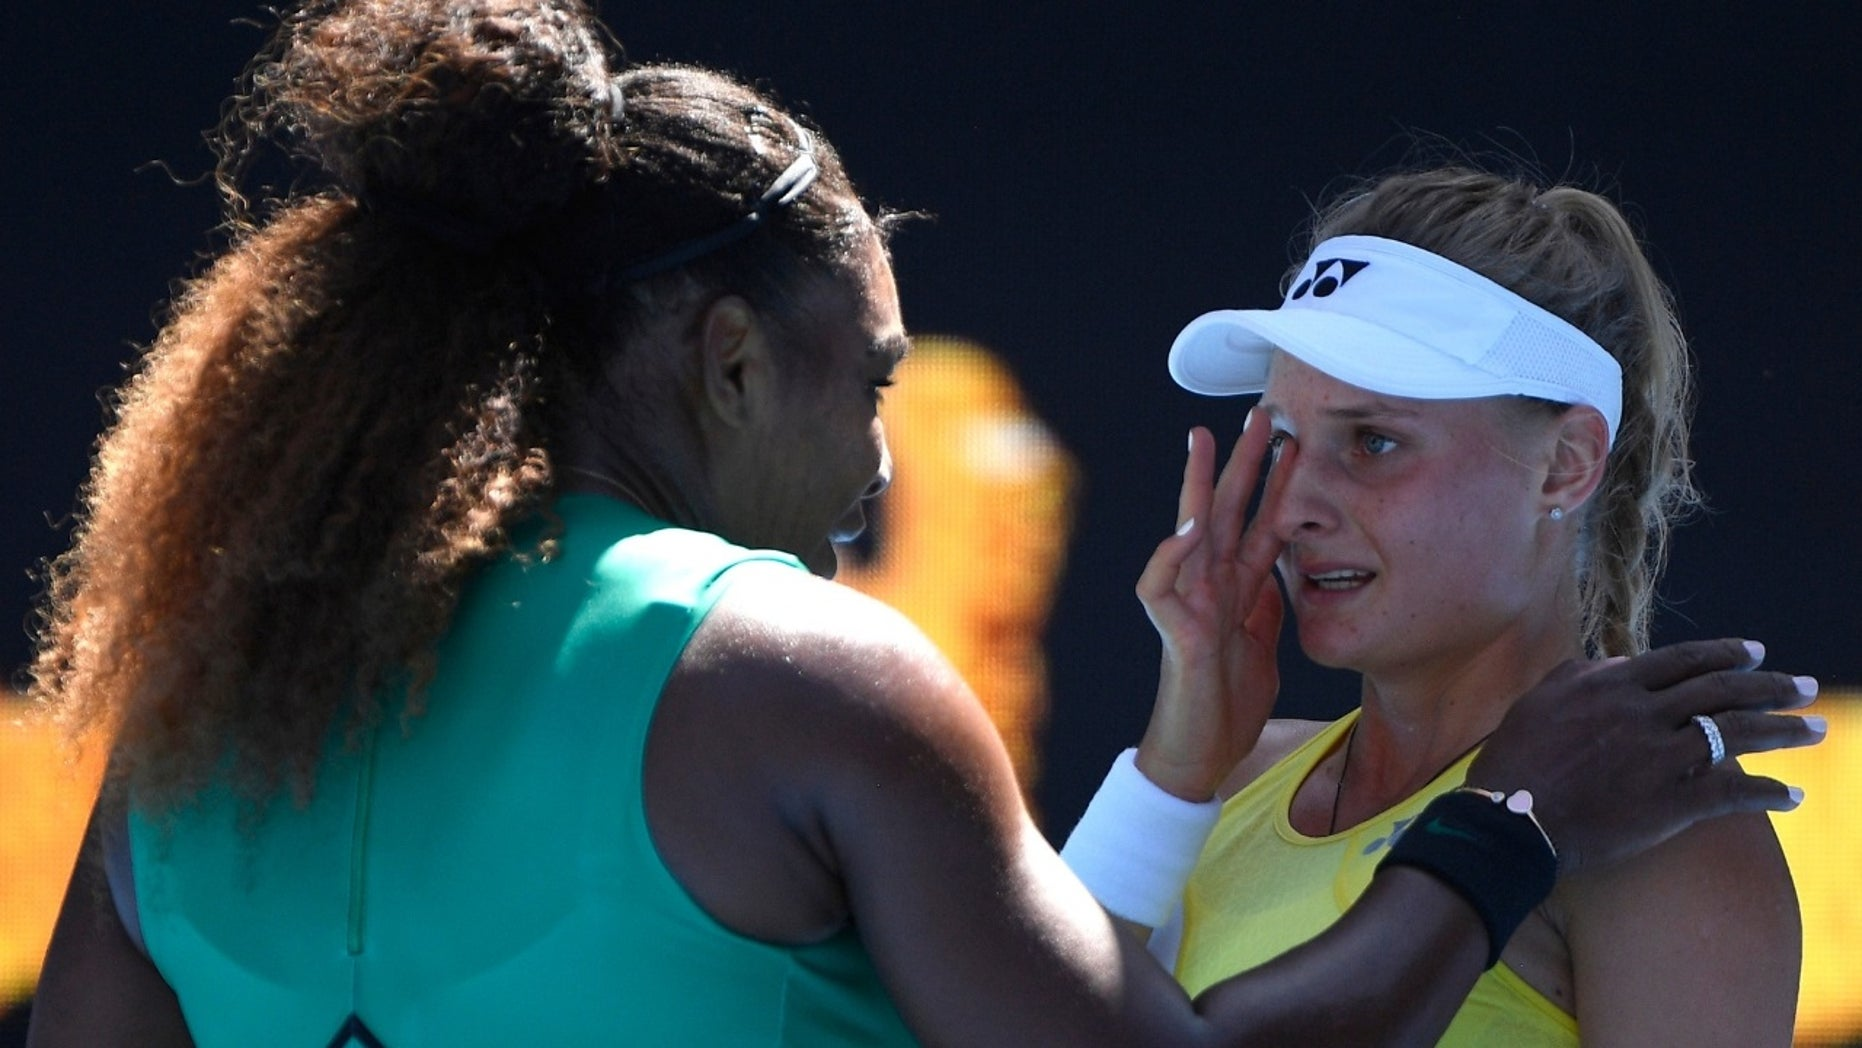 Serena Williams is seen comforting her opponent, Dayana Yastremska, after her game on Saturday, January 19, 209.